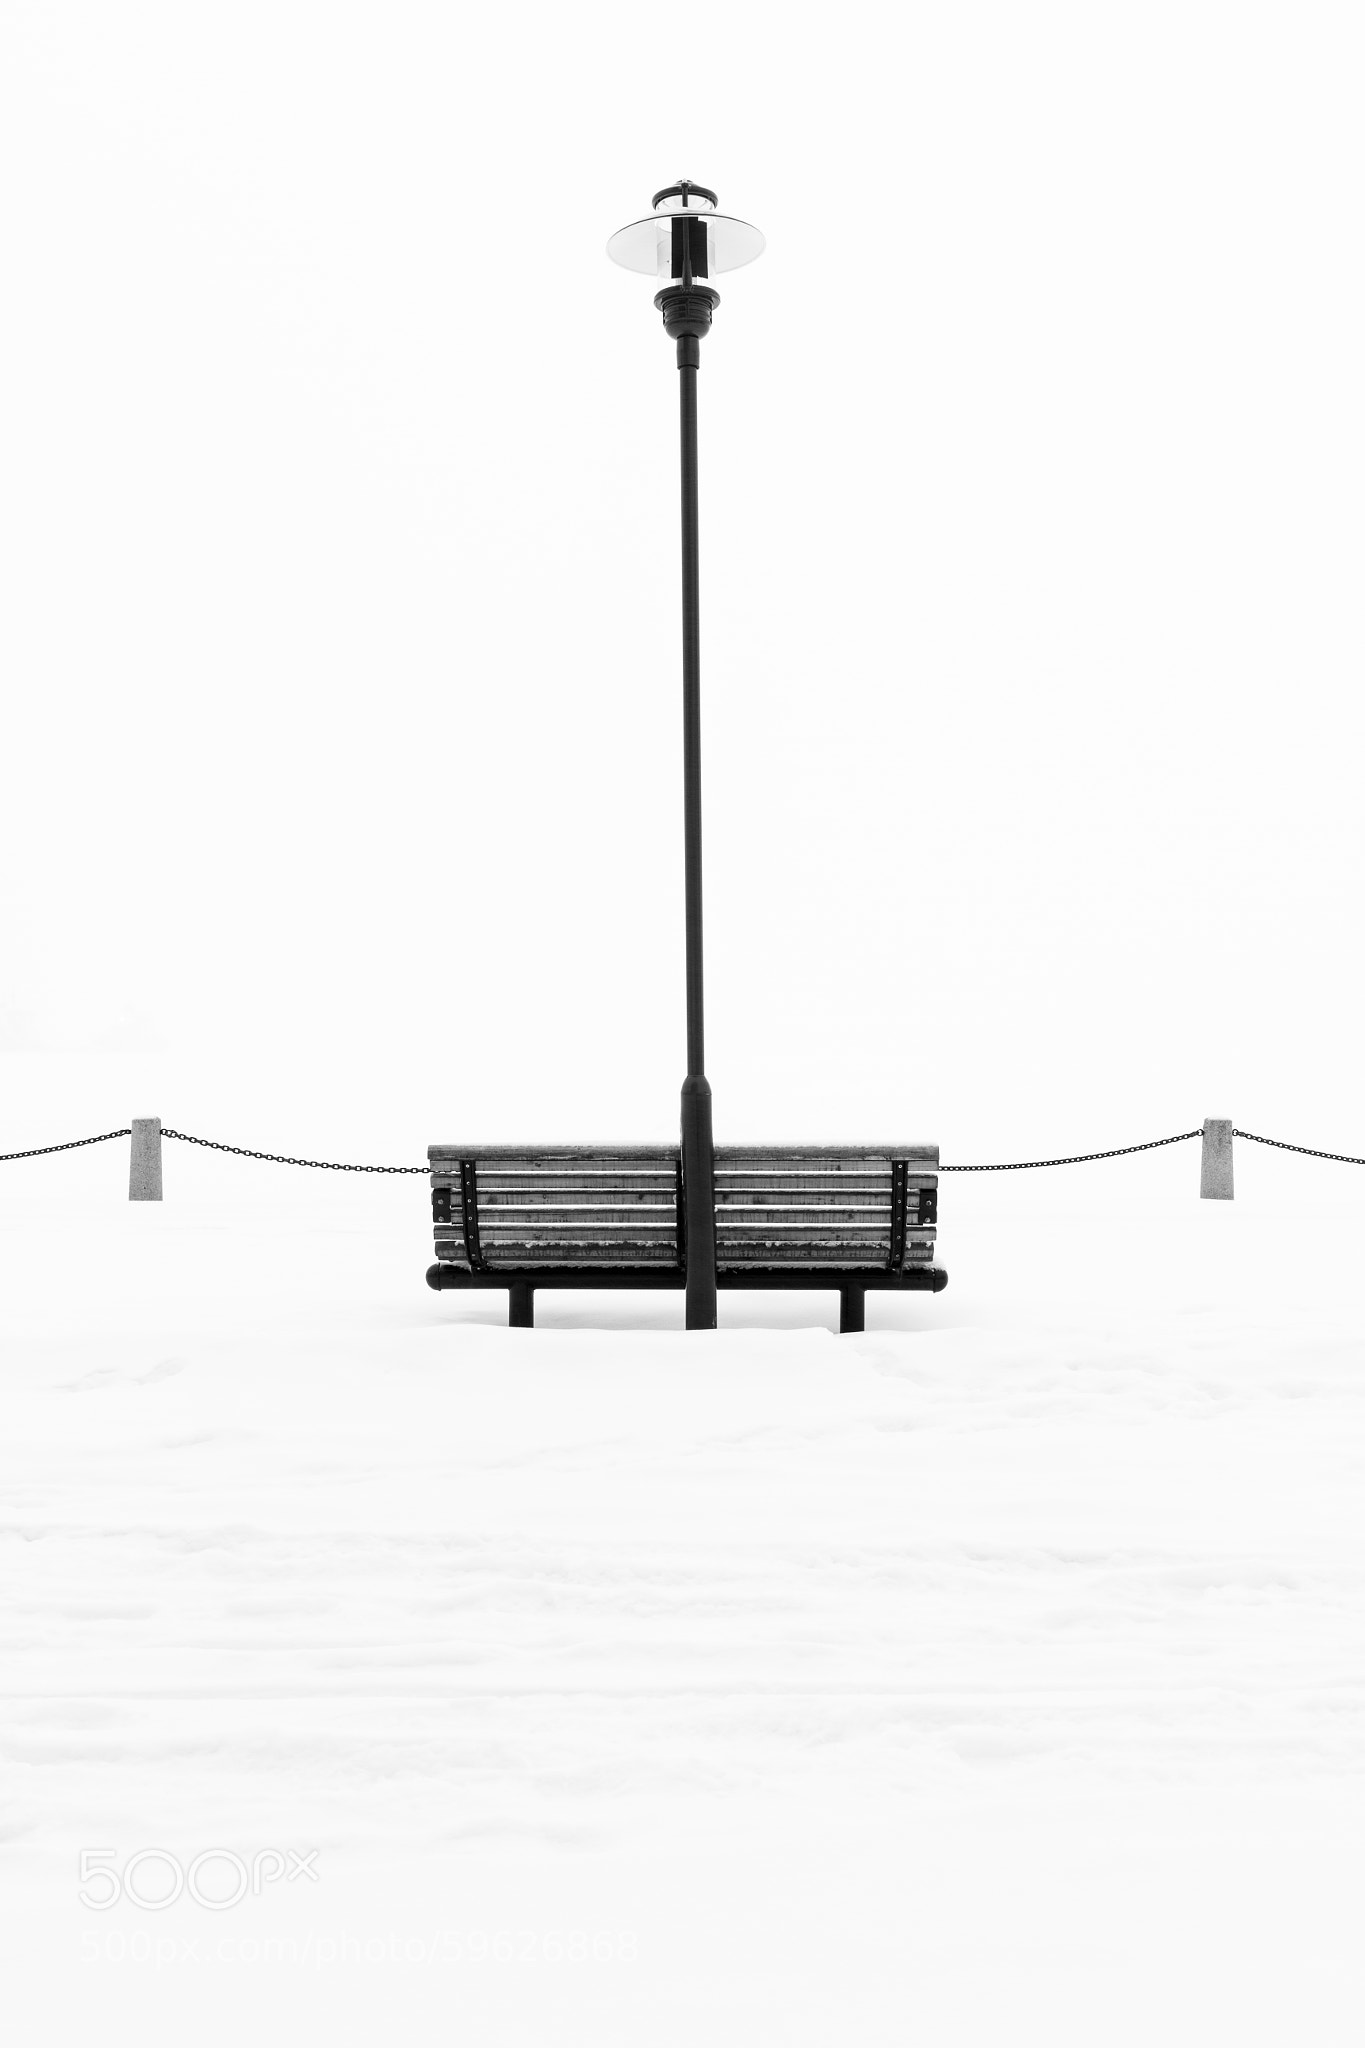 The bench at the harbor